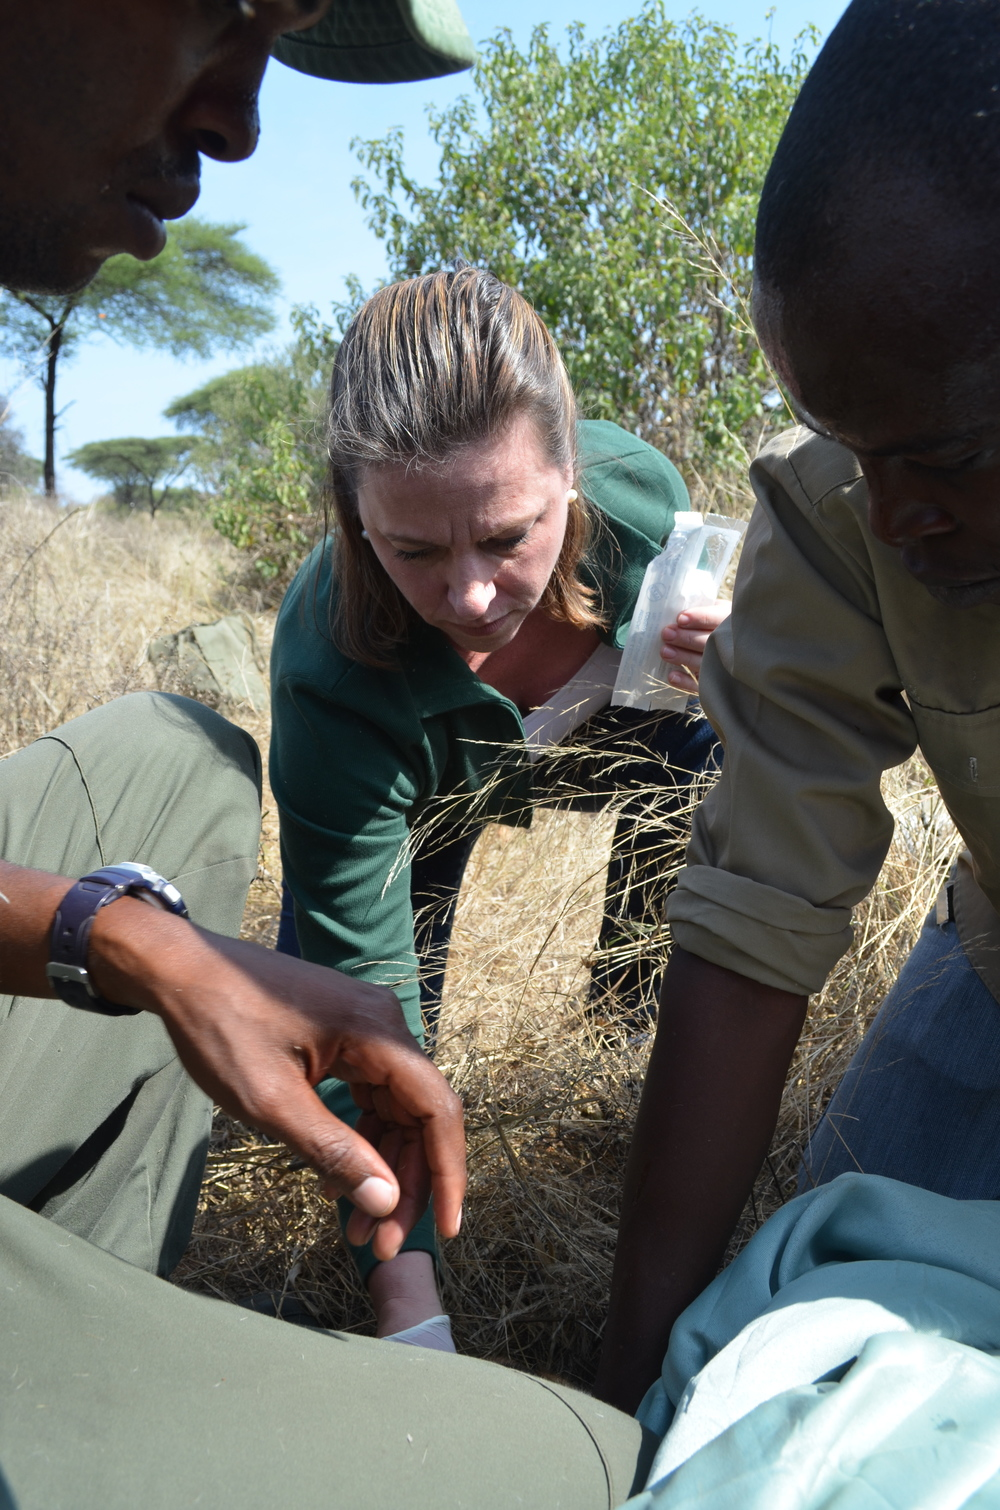 """HALI Project lead, Professor Jonna Mazet from UC Davis, collects a nasal swab sample from the giraffe while park rangers monitor the respiration rate.                 Normal.dotm    0    0    1    21    123    University of California, Davis    1    1    151    12.0                        0    false          18 pt    18 pt    0    0       false    false    false                                           /* Style Definitions */ table.MsoNormalTable {mso-style-name:""""Table Normal""""; mso-tstyle-rowband-size:0; mso-tstyle-colband-size:0; mso-style-noshow:yes; mso-style-parent:""""""""; mso-padding-alt:0in 5.4pt 0in 5.4pt; mso-para-margin:0in; mso-para-margin-bottom:.0001pt; mso-pagination:widow-orphan; font-size:12.0pt; font-family:""""Times New Roman""""; mso-ascii-font-family:Cambria; mso-ascii-theme-font:minor-latin; mso-fareast-font-family:""""Times New Roman""""; mso-fareast-theme-font:minor-fareast; mso-hansi-font-family:Cambria; mso-hansi-theme-font:minor-latin;}"""